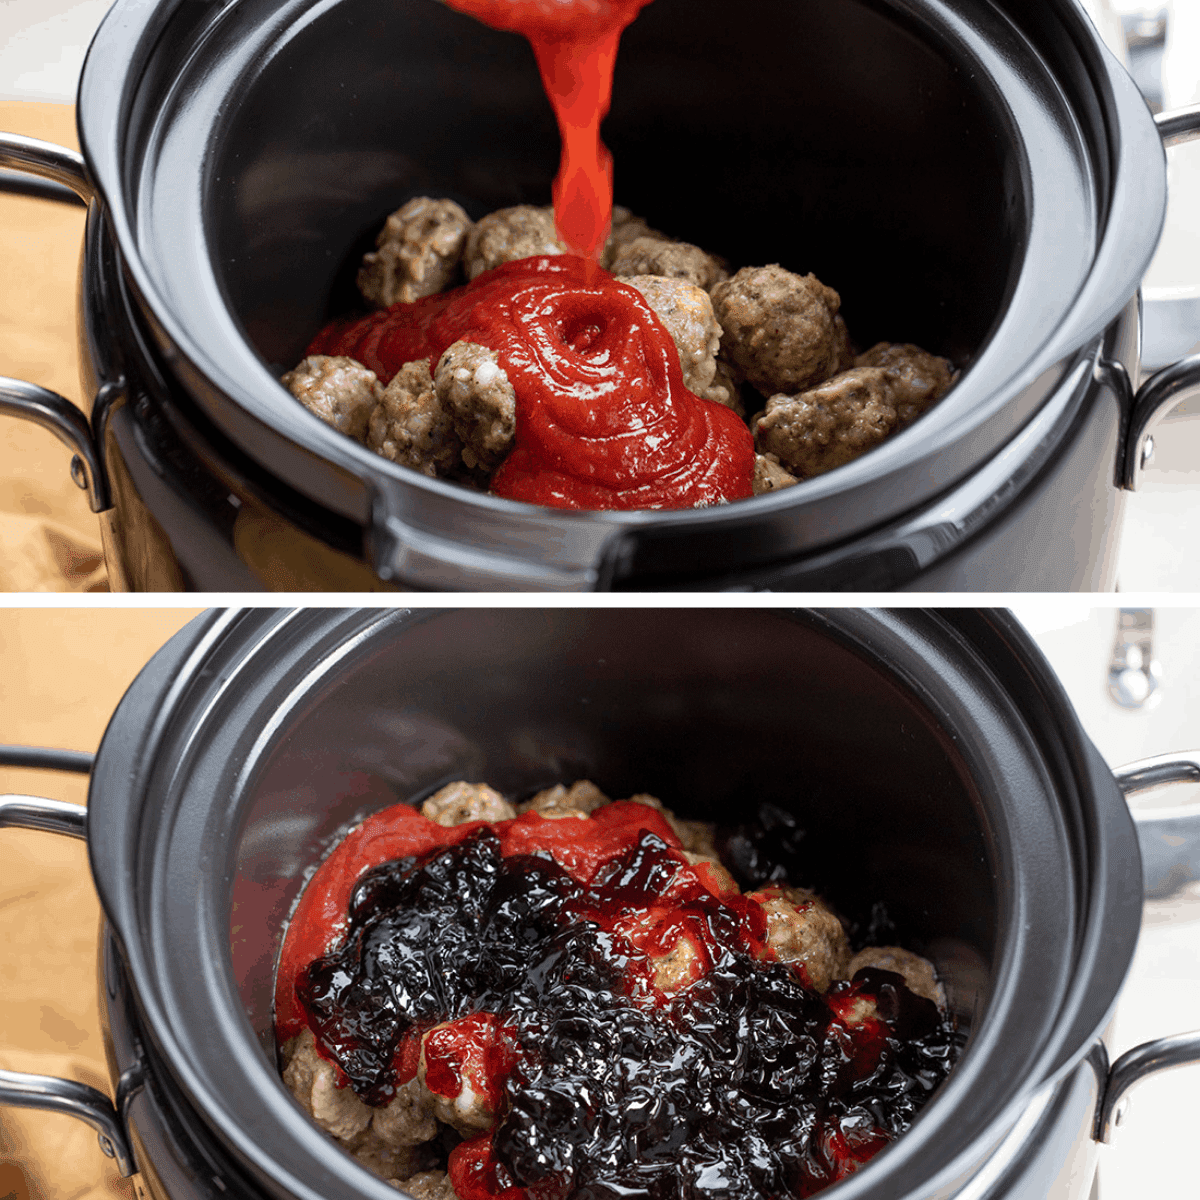 Ingredients Being Added to Grape Jelly Meatballs on Crockpot